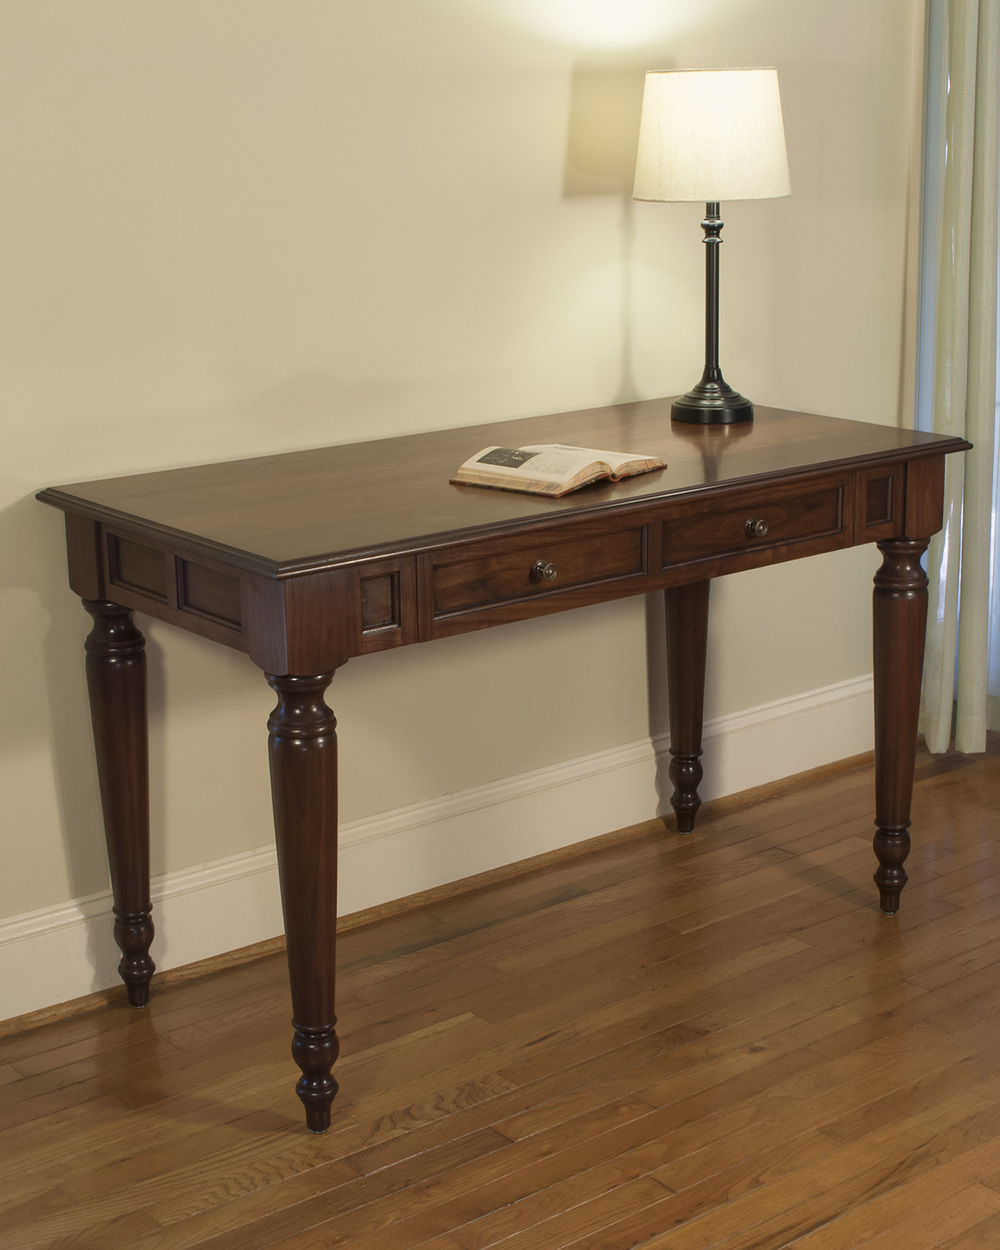 Traditional Designer Furniture: Atlanta, GA Custom Desk & Office Furniture Design